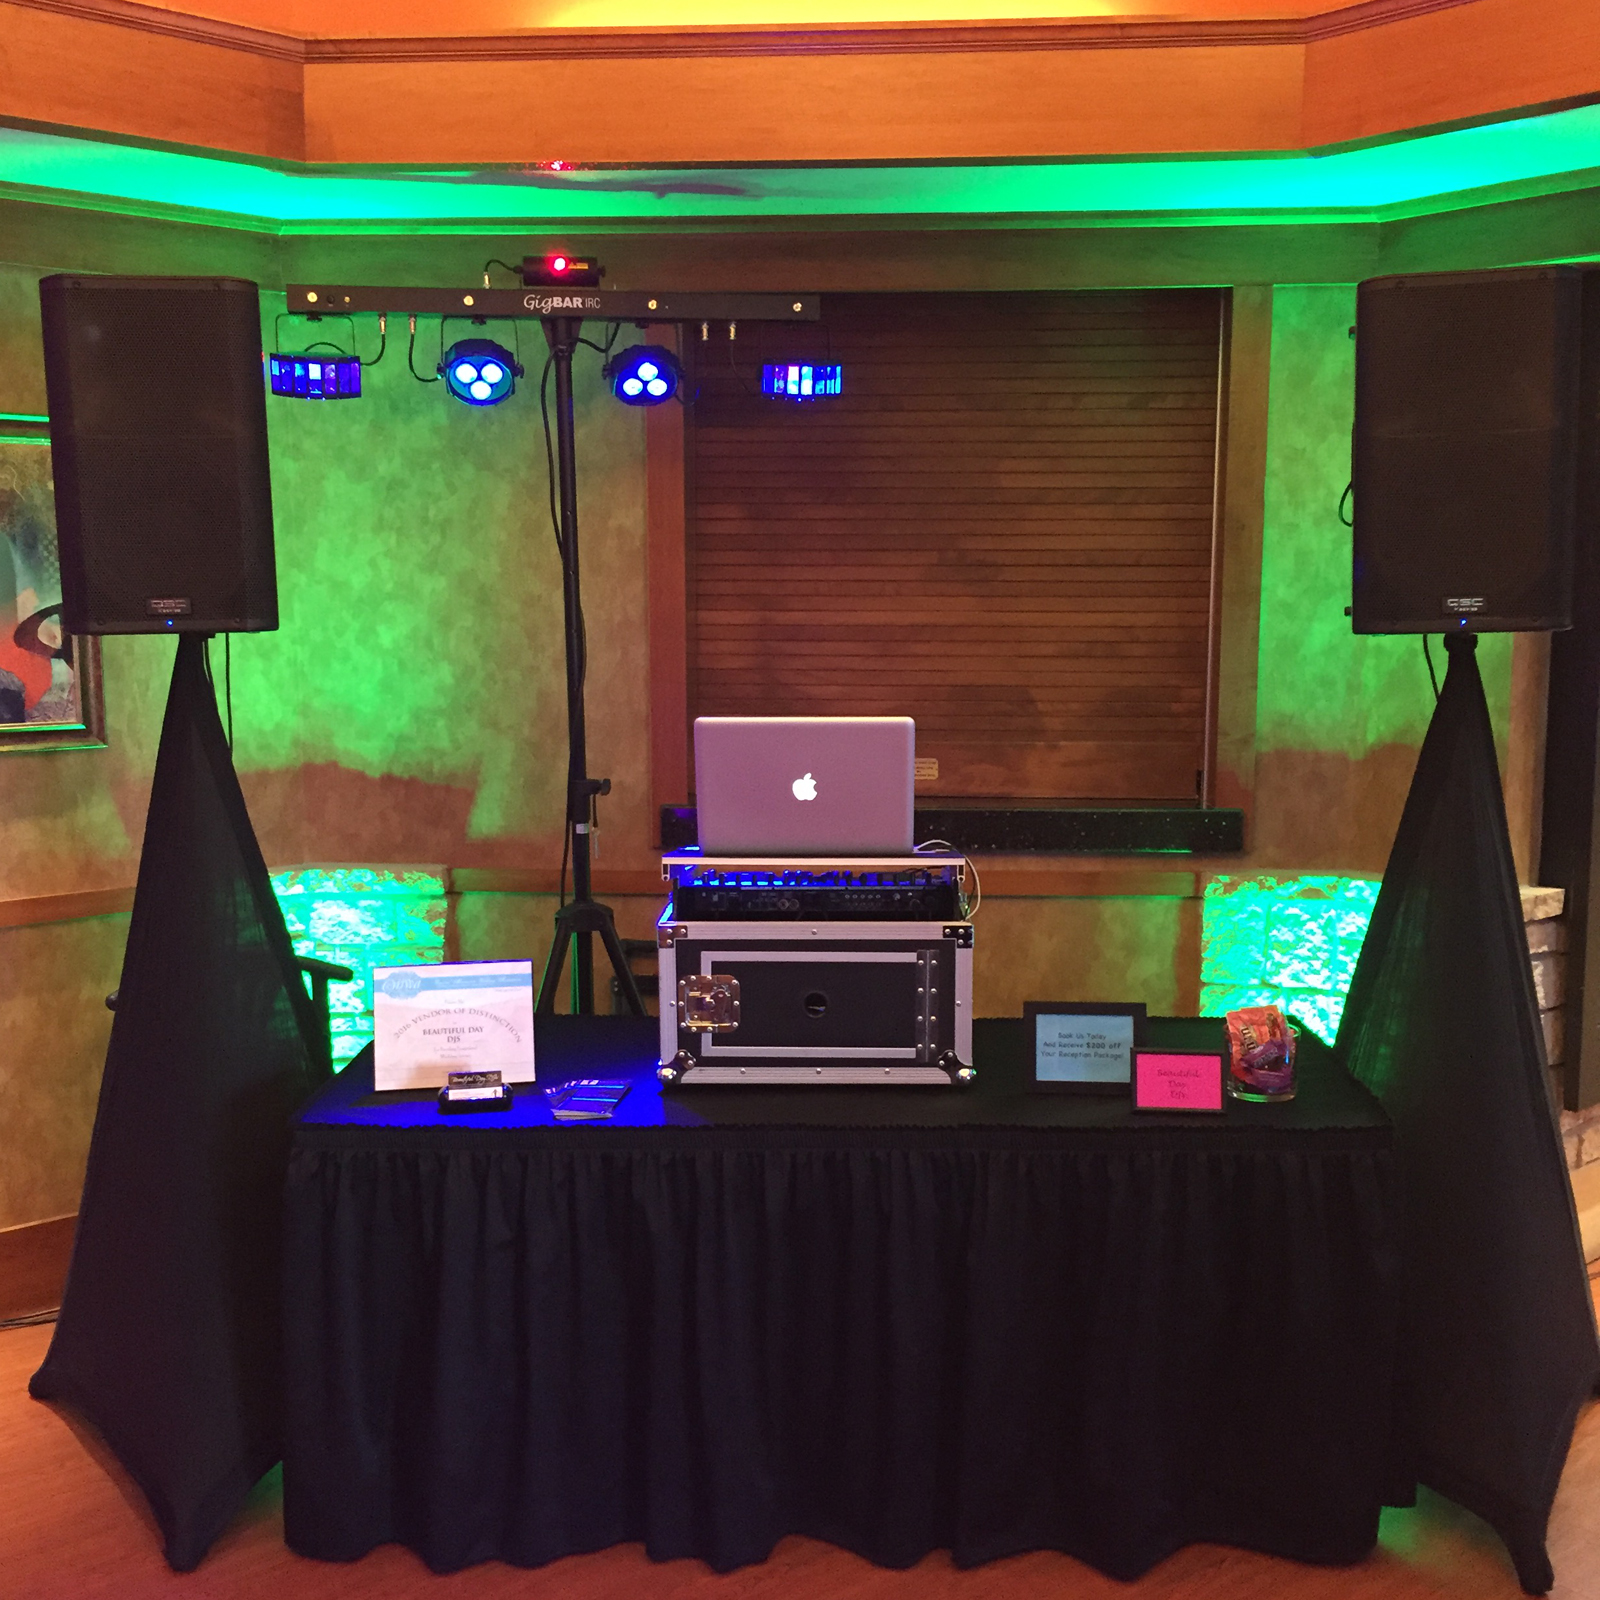 Wedding Showcase DJ Booth, Crown Room Banquet Center, Rogers, Minnesota